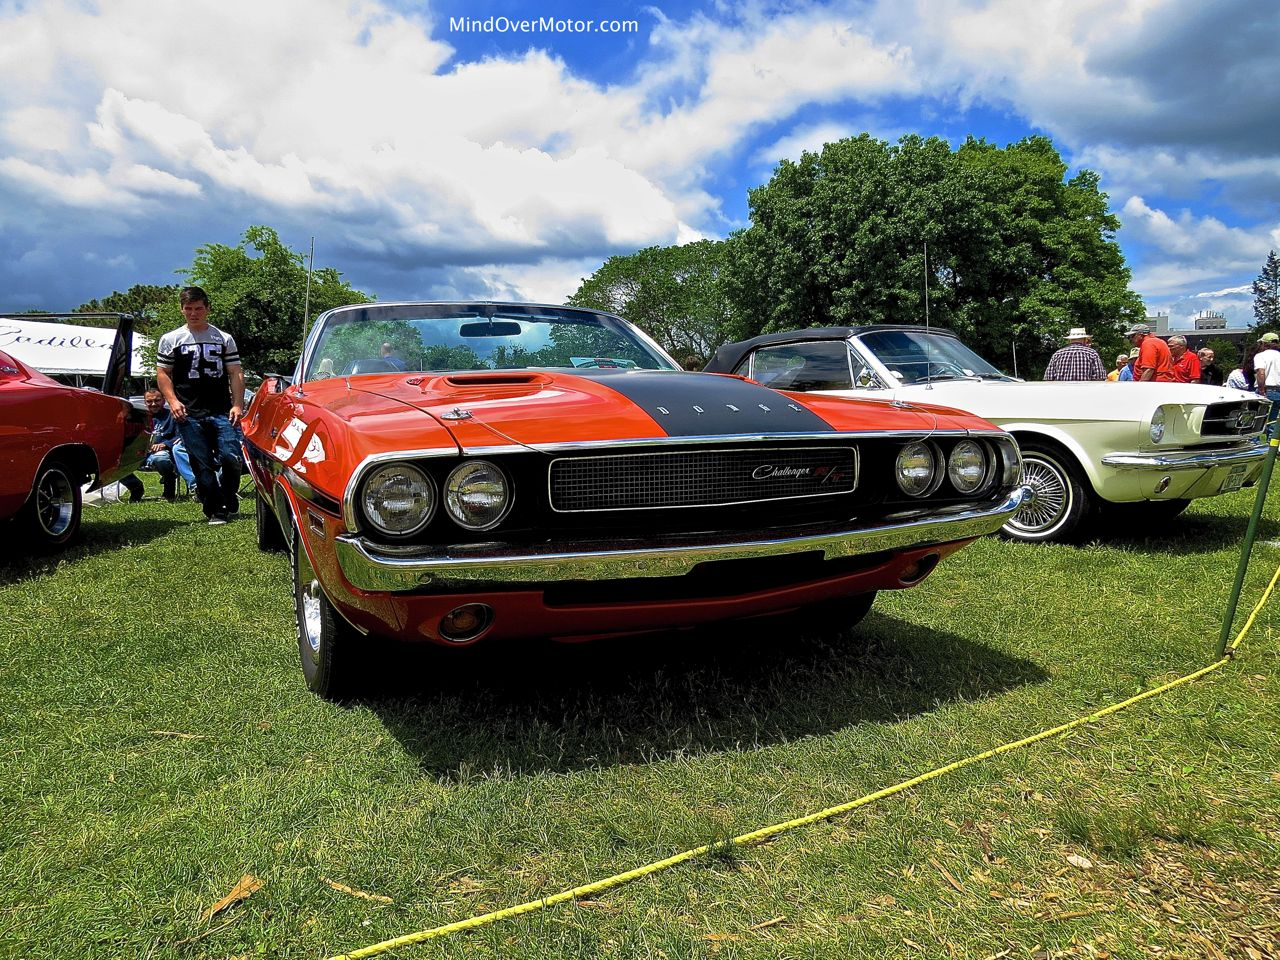 1970 Dodge Challenger R:T Convertible Front Angle